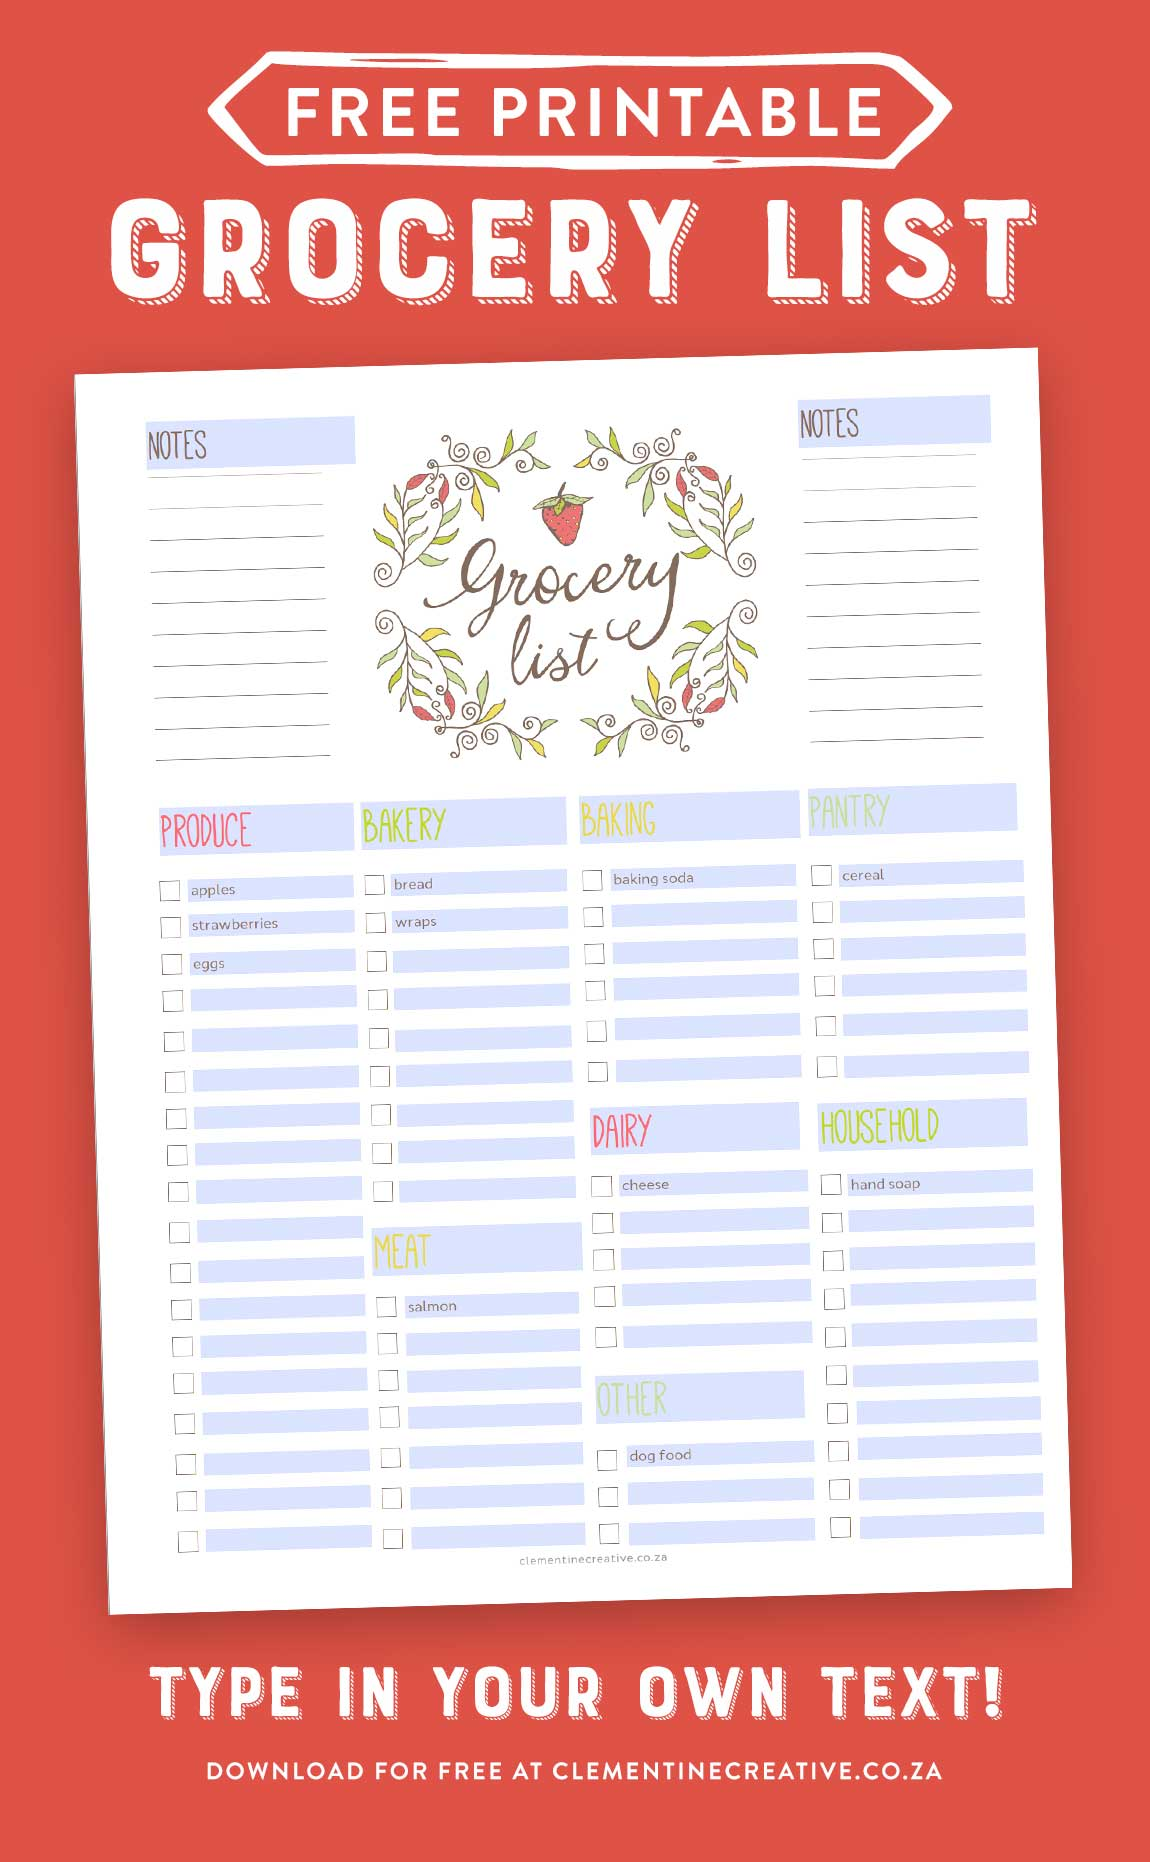 free printable editable grocery list with text boxes you can type your own text in